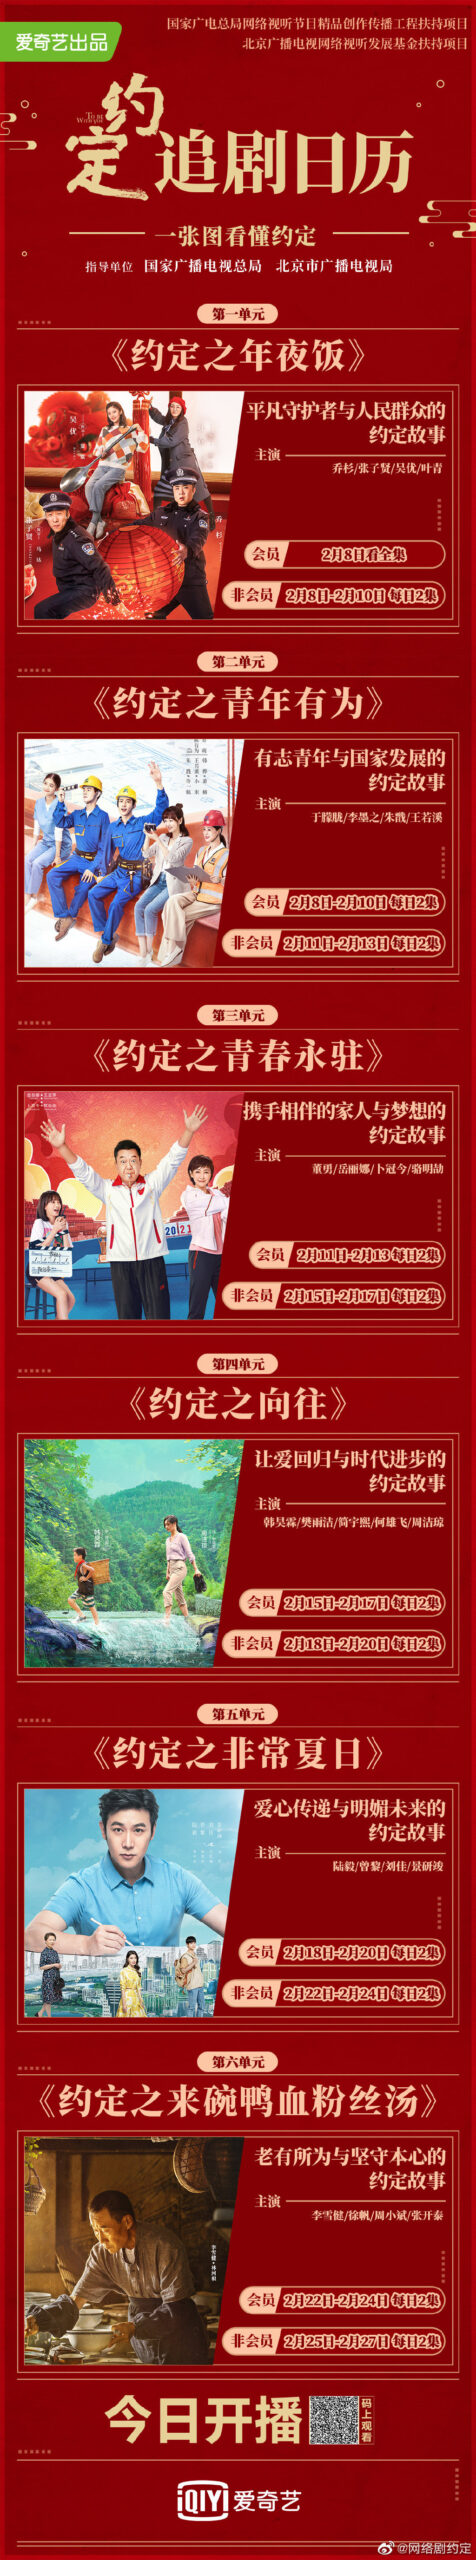 To Be With You Chinese Drama Airing Calendar